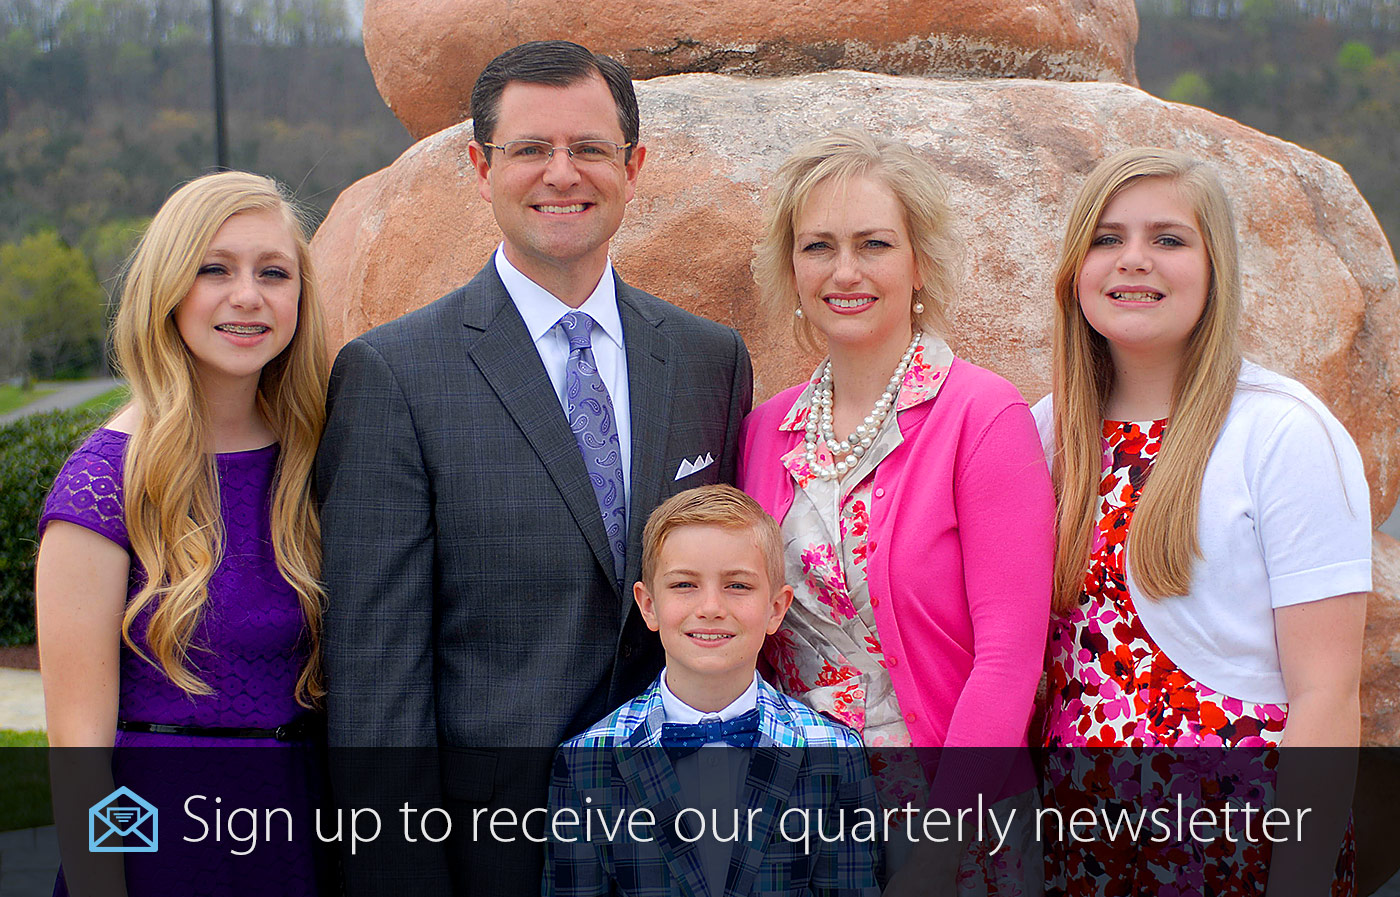 Scott Pauley Family sign up to receive Quarterly newsletter